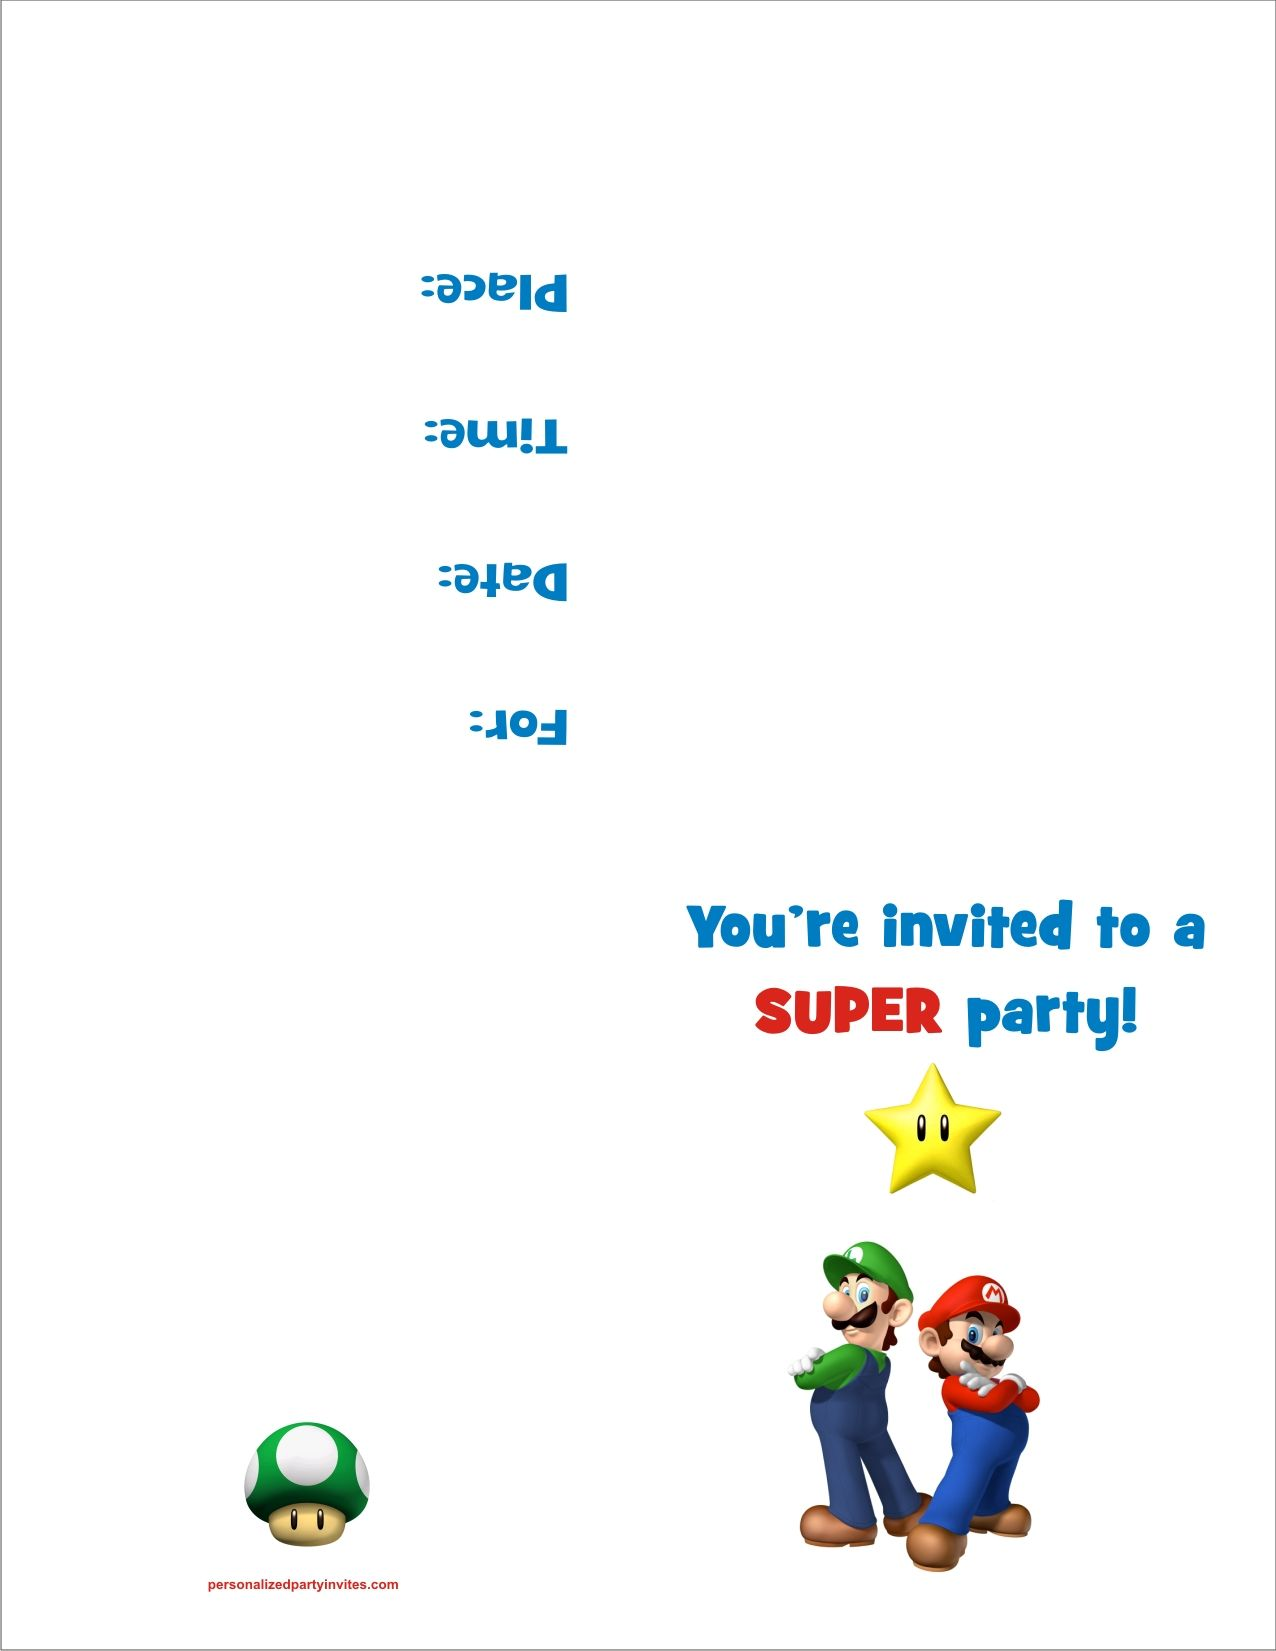 super mario bros free printable birthday party invitation, Party invitations